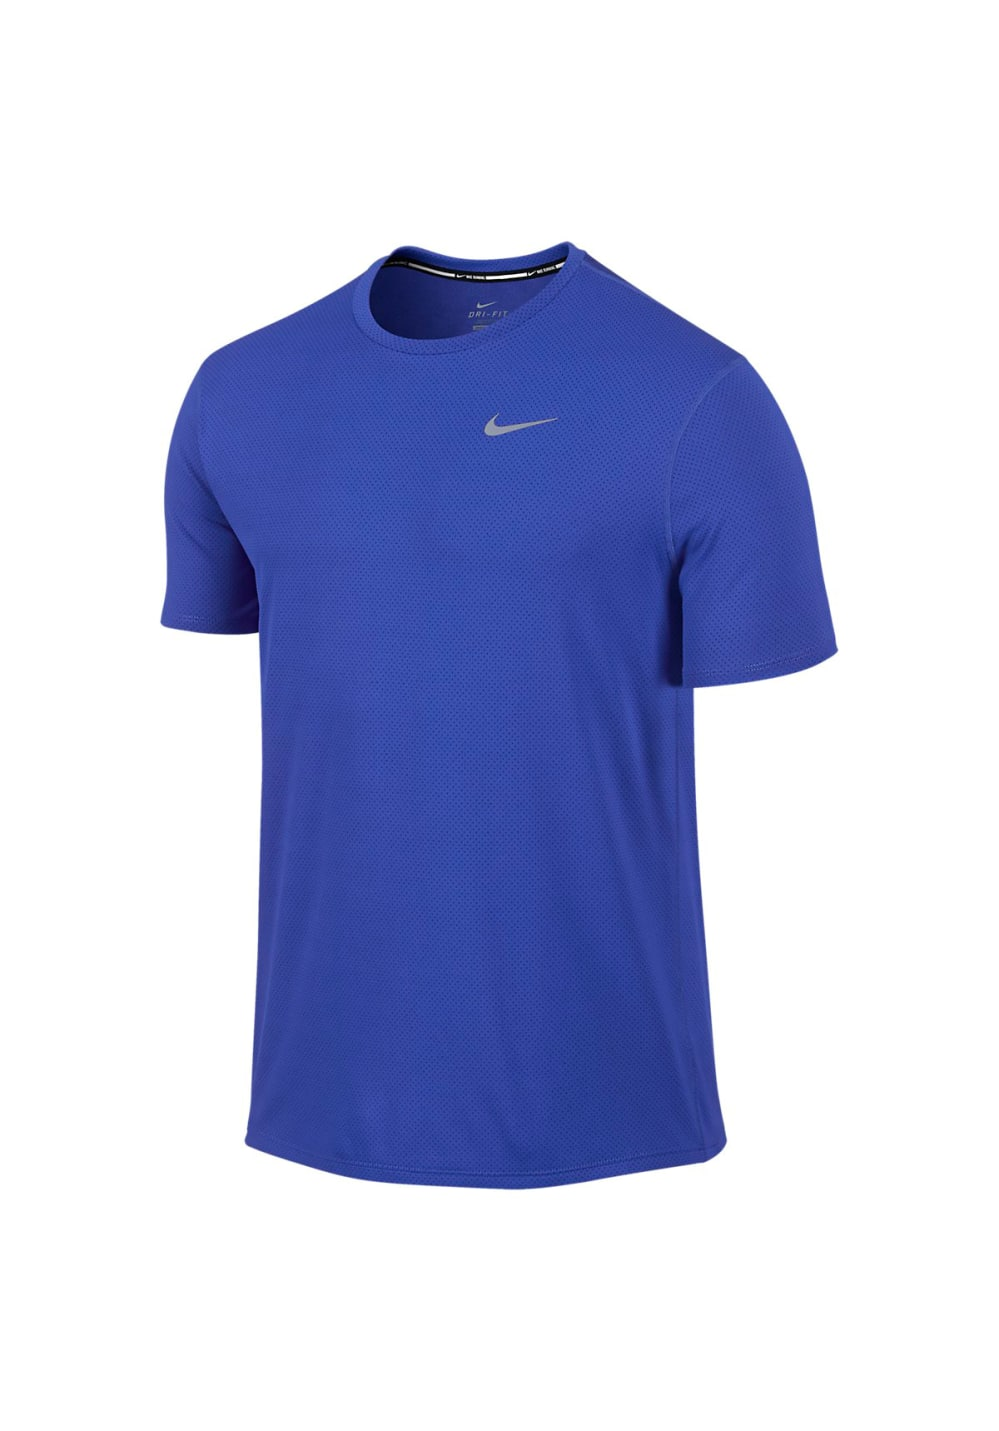 Nike Dri Fit Contour Short Sleeve Running tops for Men Blue